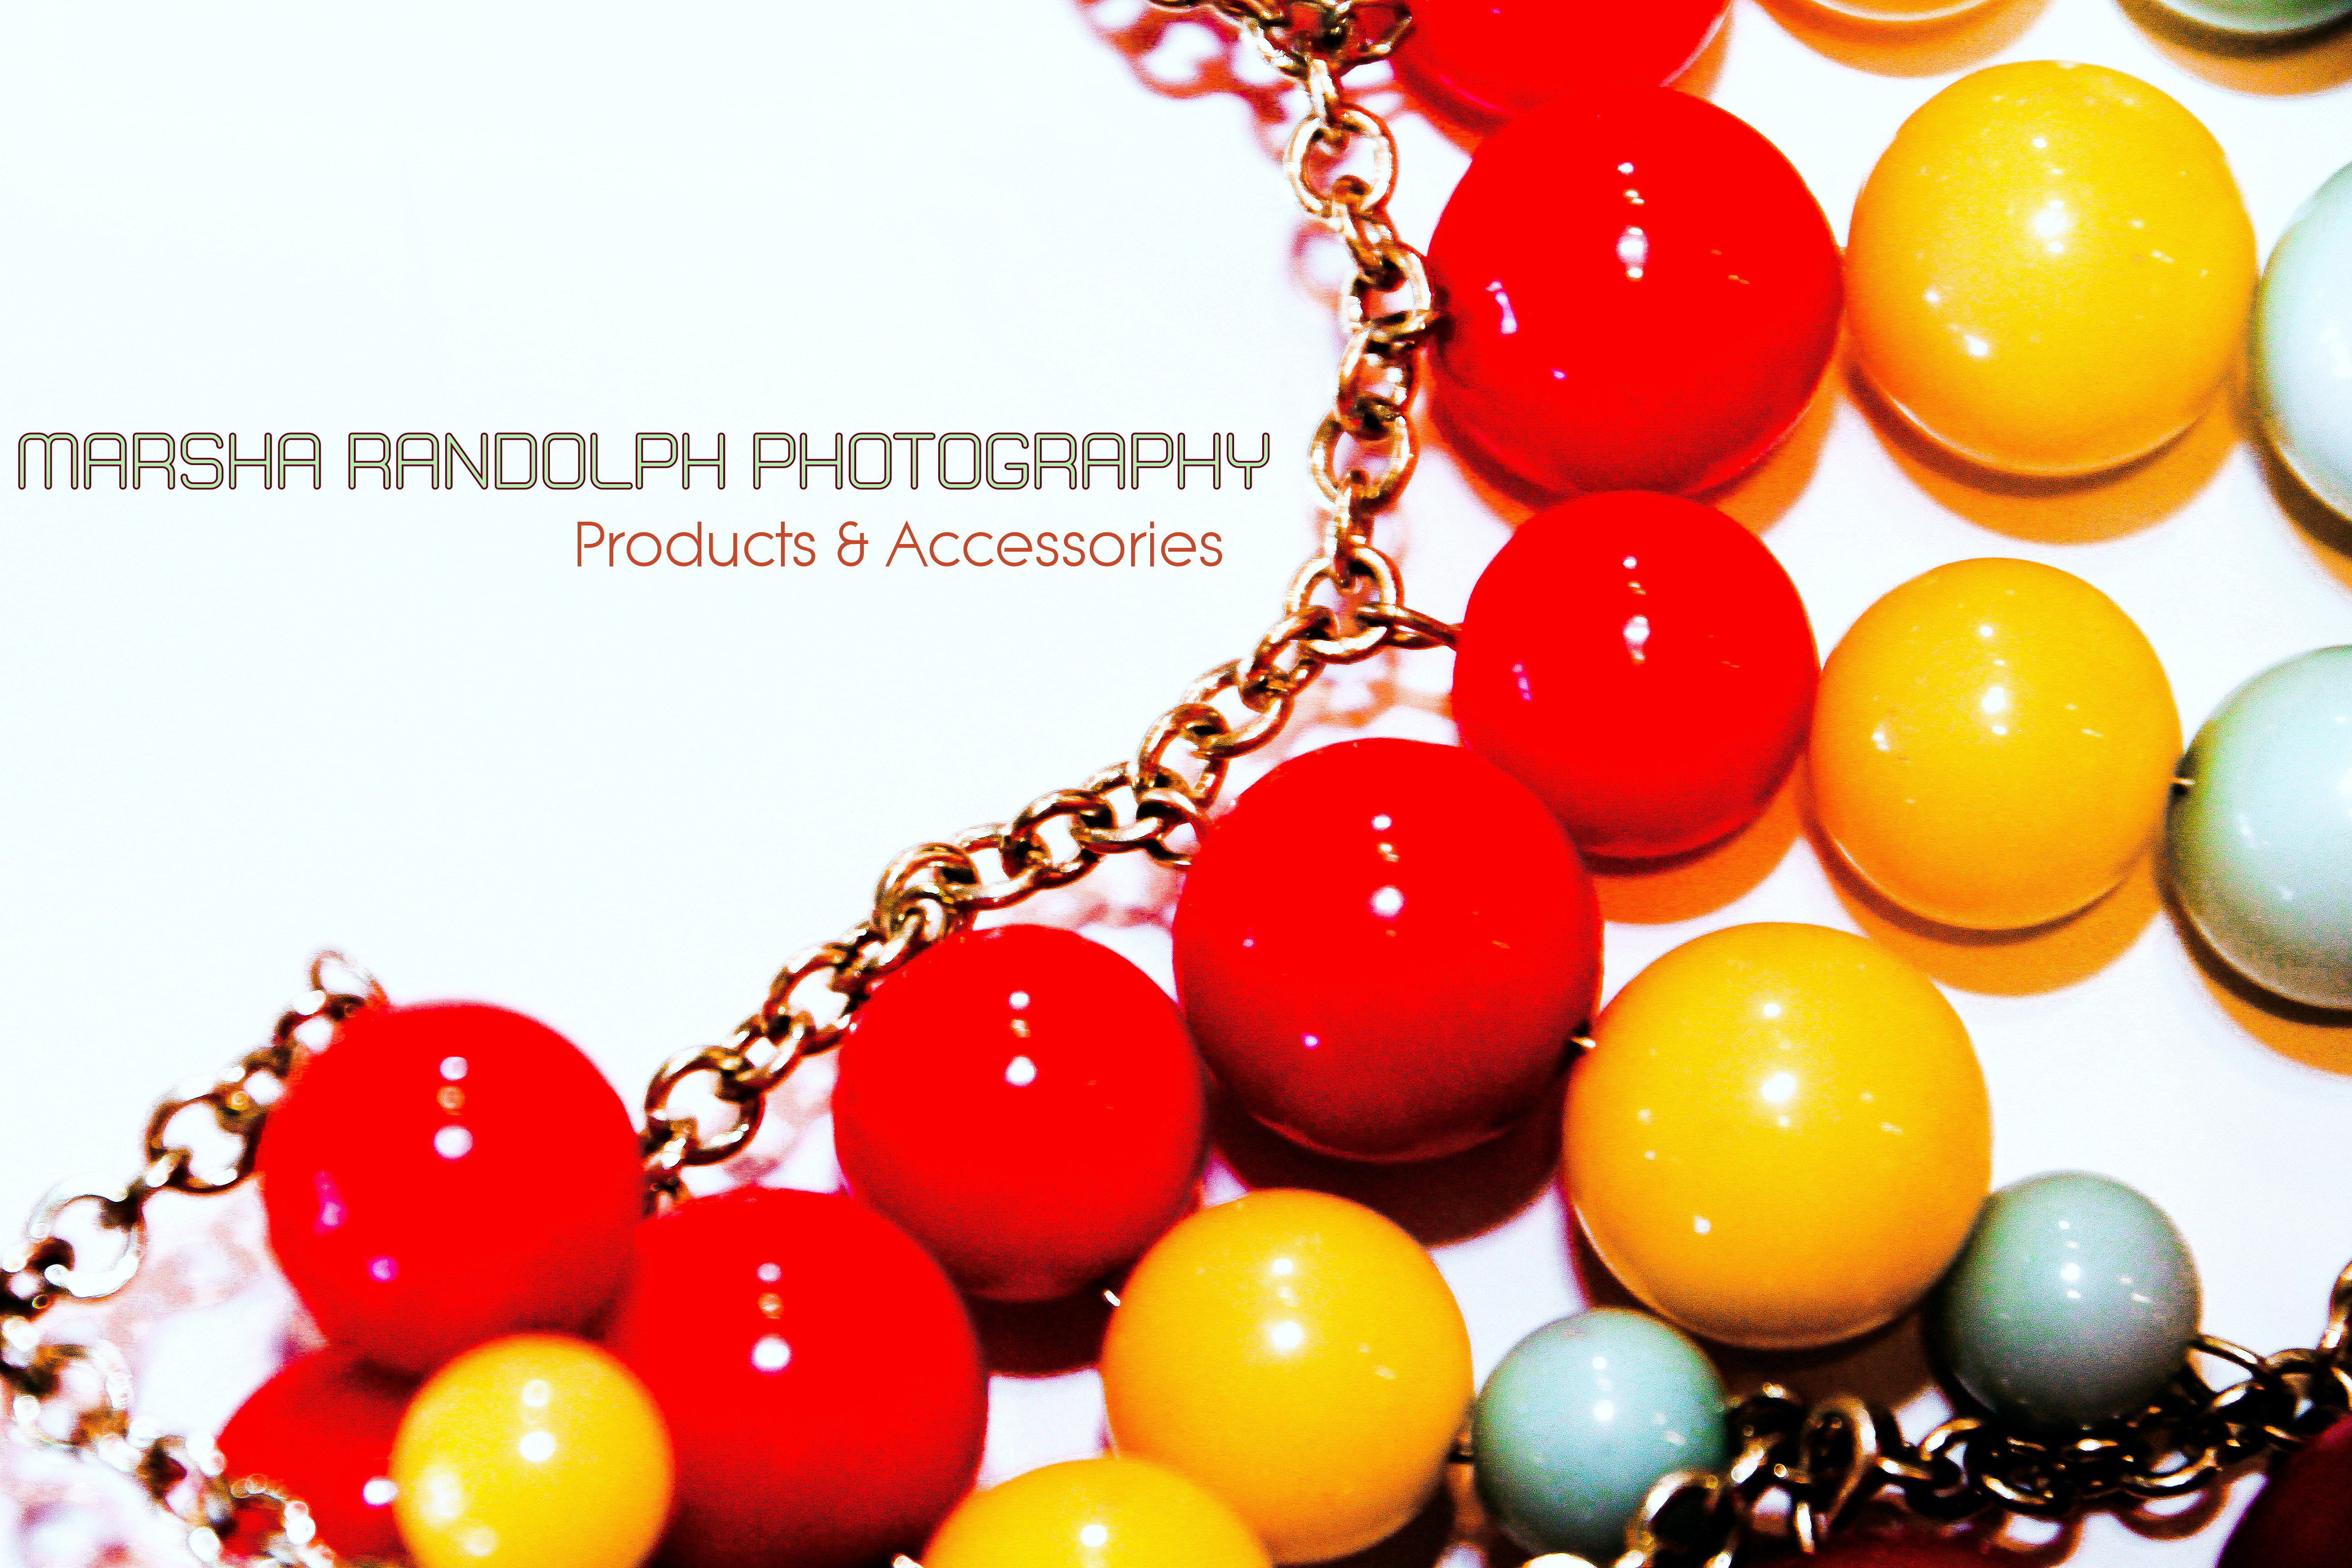 PRODUCT AND ACCESSORIES 7D6242_NECKLACE_MR